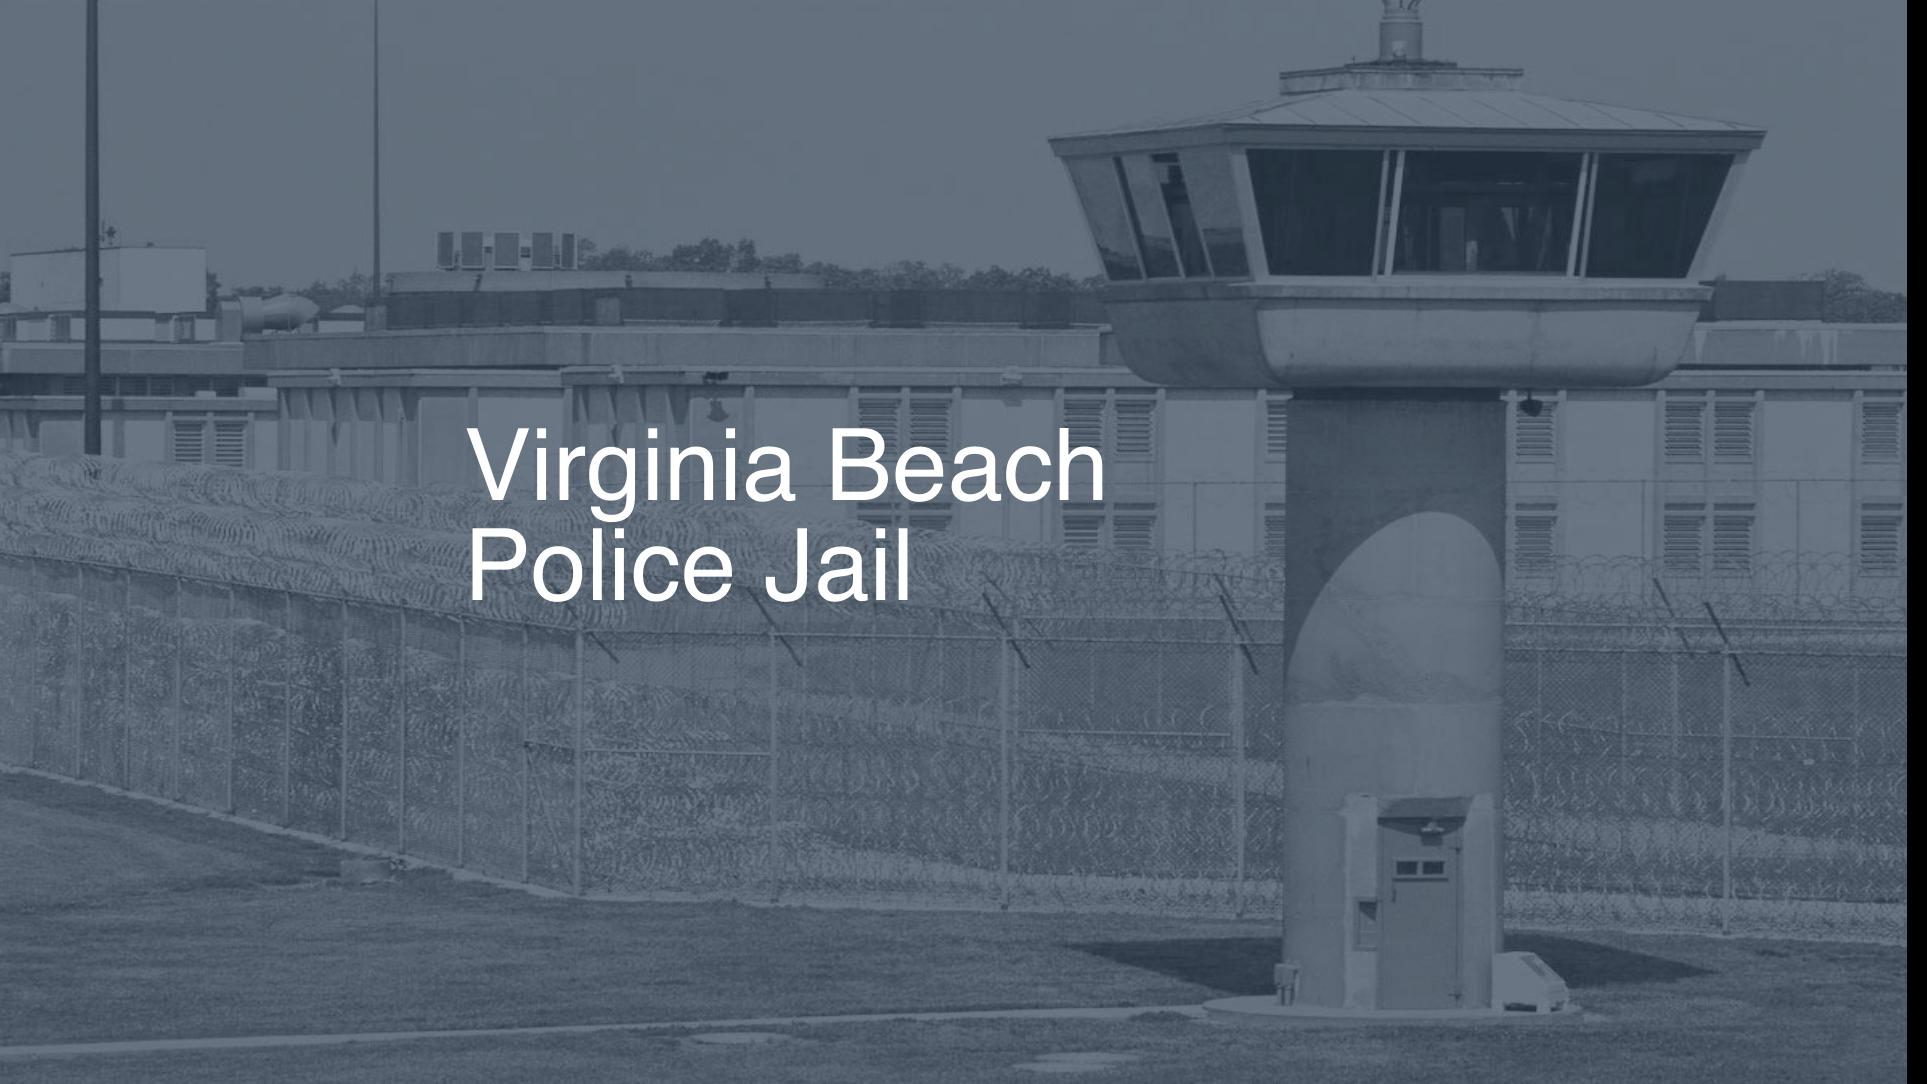 Virginia Beach Police Jail Inmate Search, Lookup & Services - Pigeonly